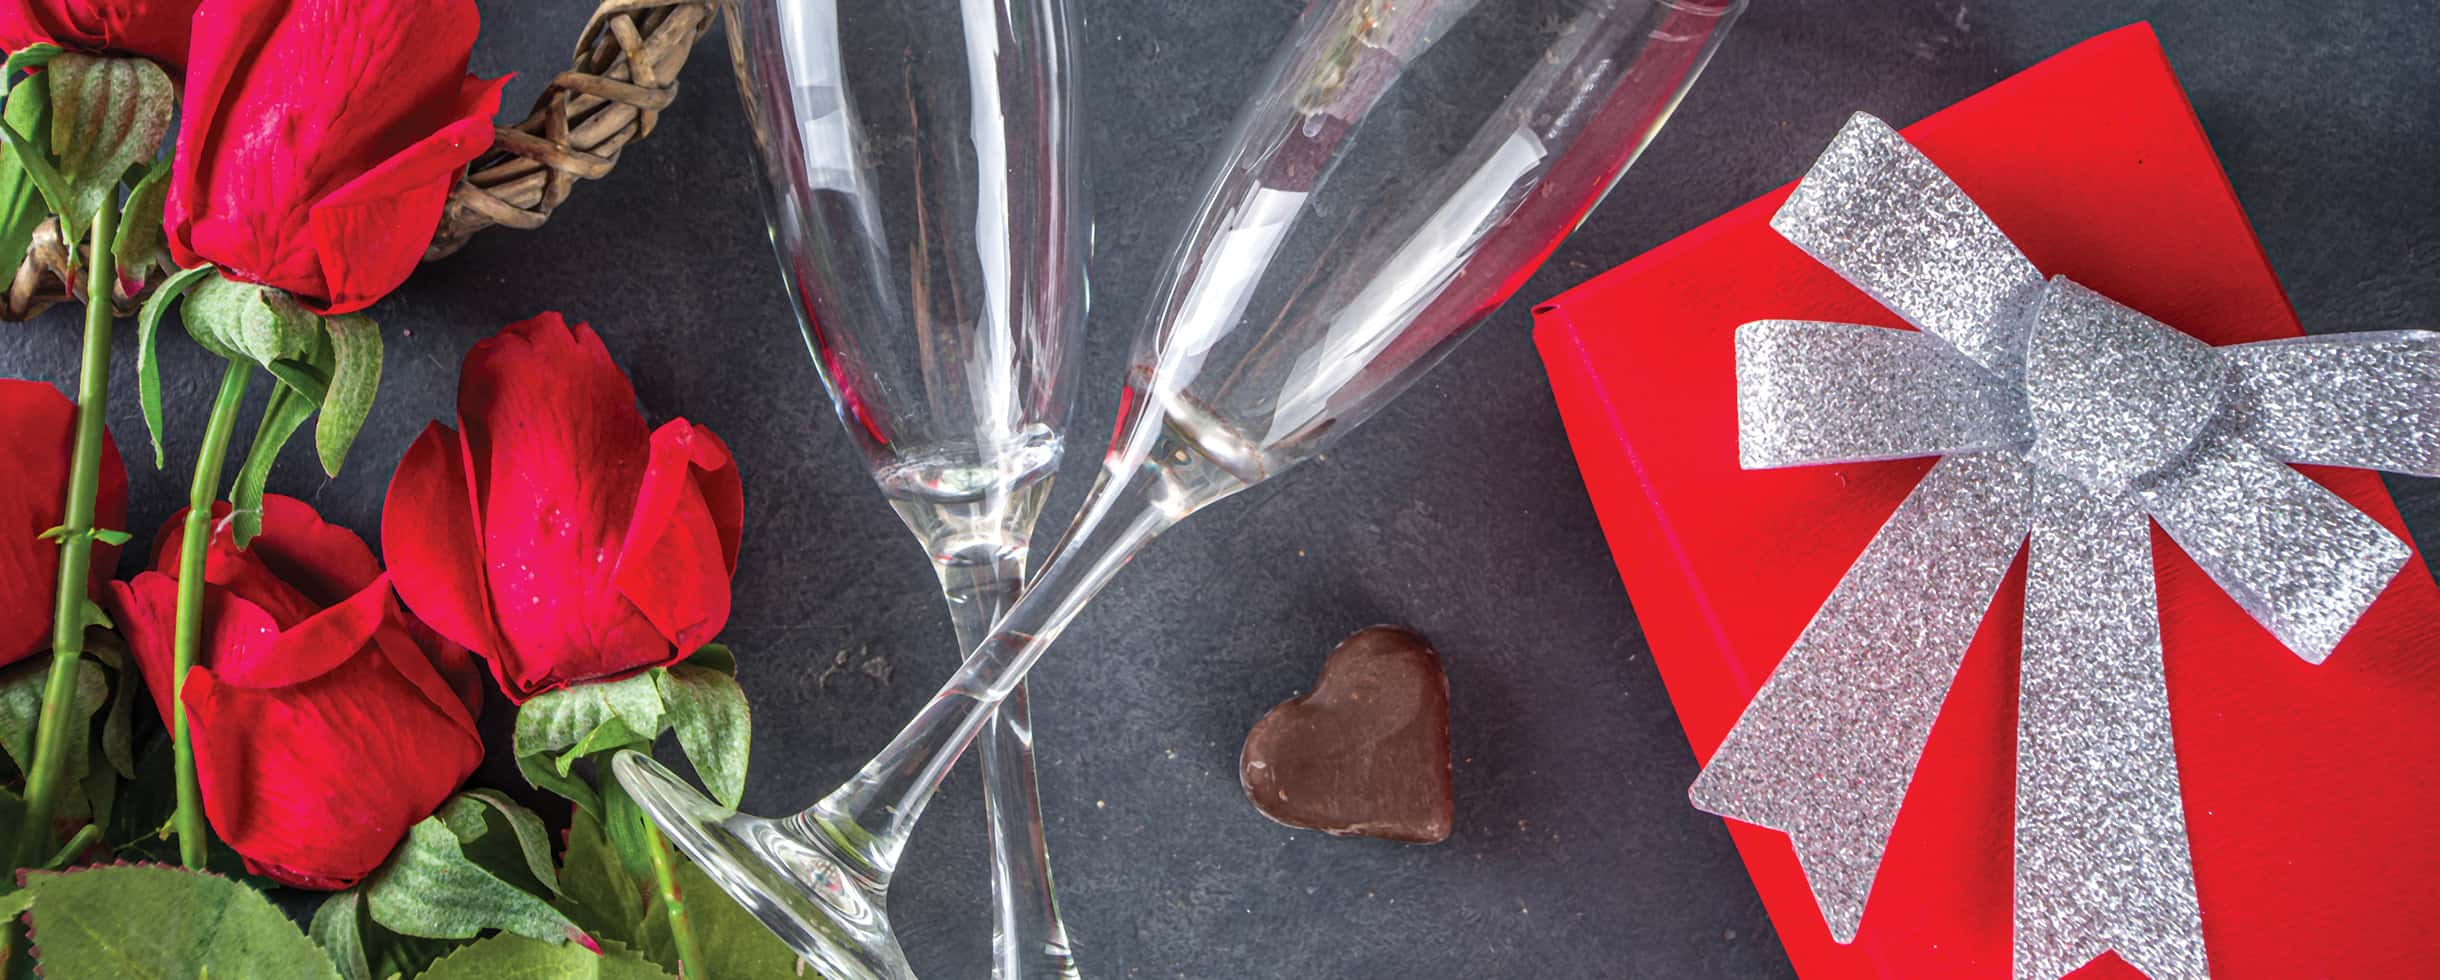 Champagne, flowers and chocolates